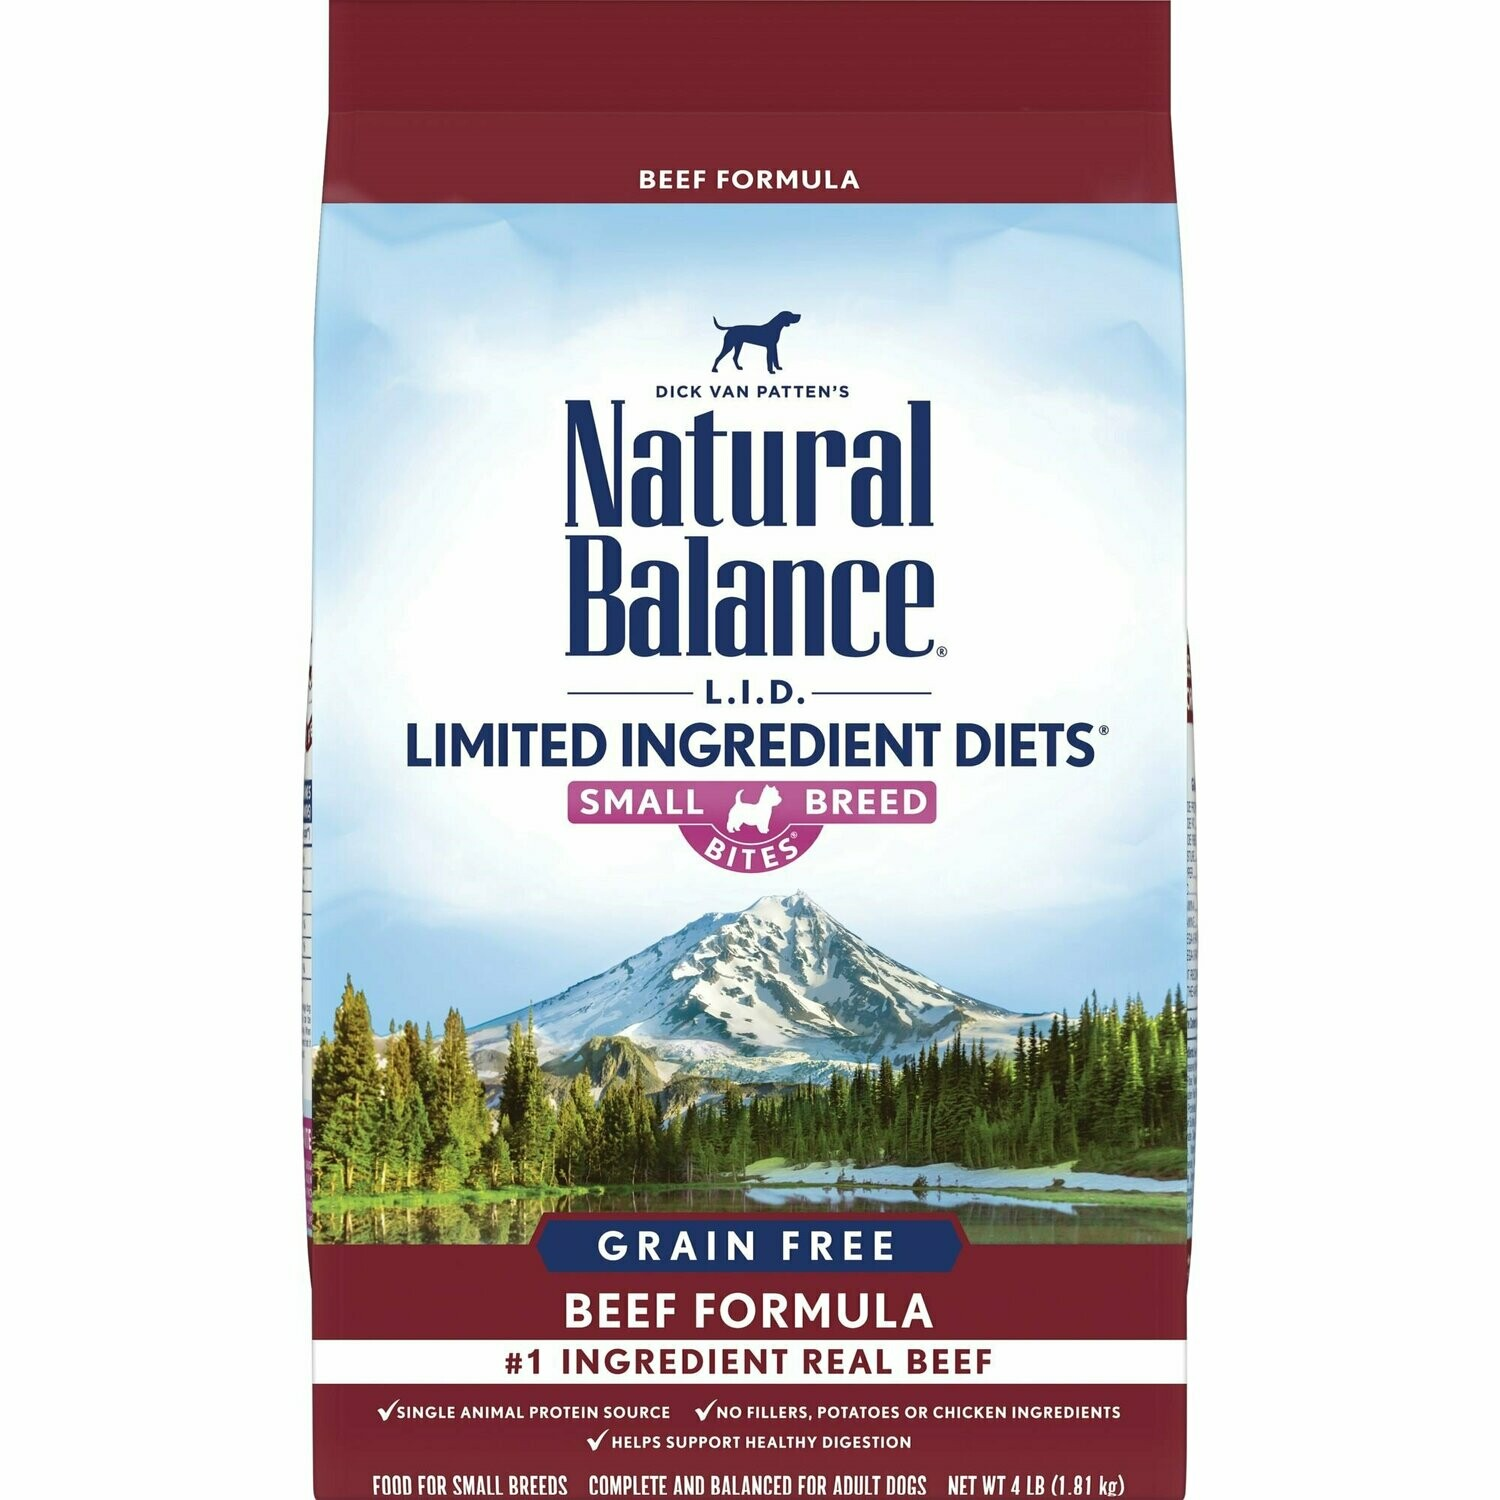 Natural Balance L.I.D. Limited Ingredient Diets Grain Free - High Protein Beef Small Breed Dry Dog Food 4 lbs (7/19) (A.G2)